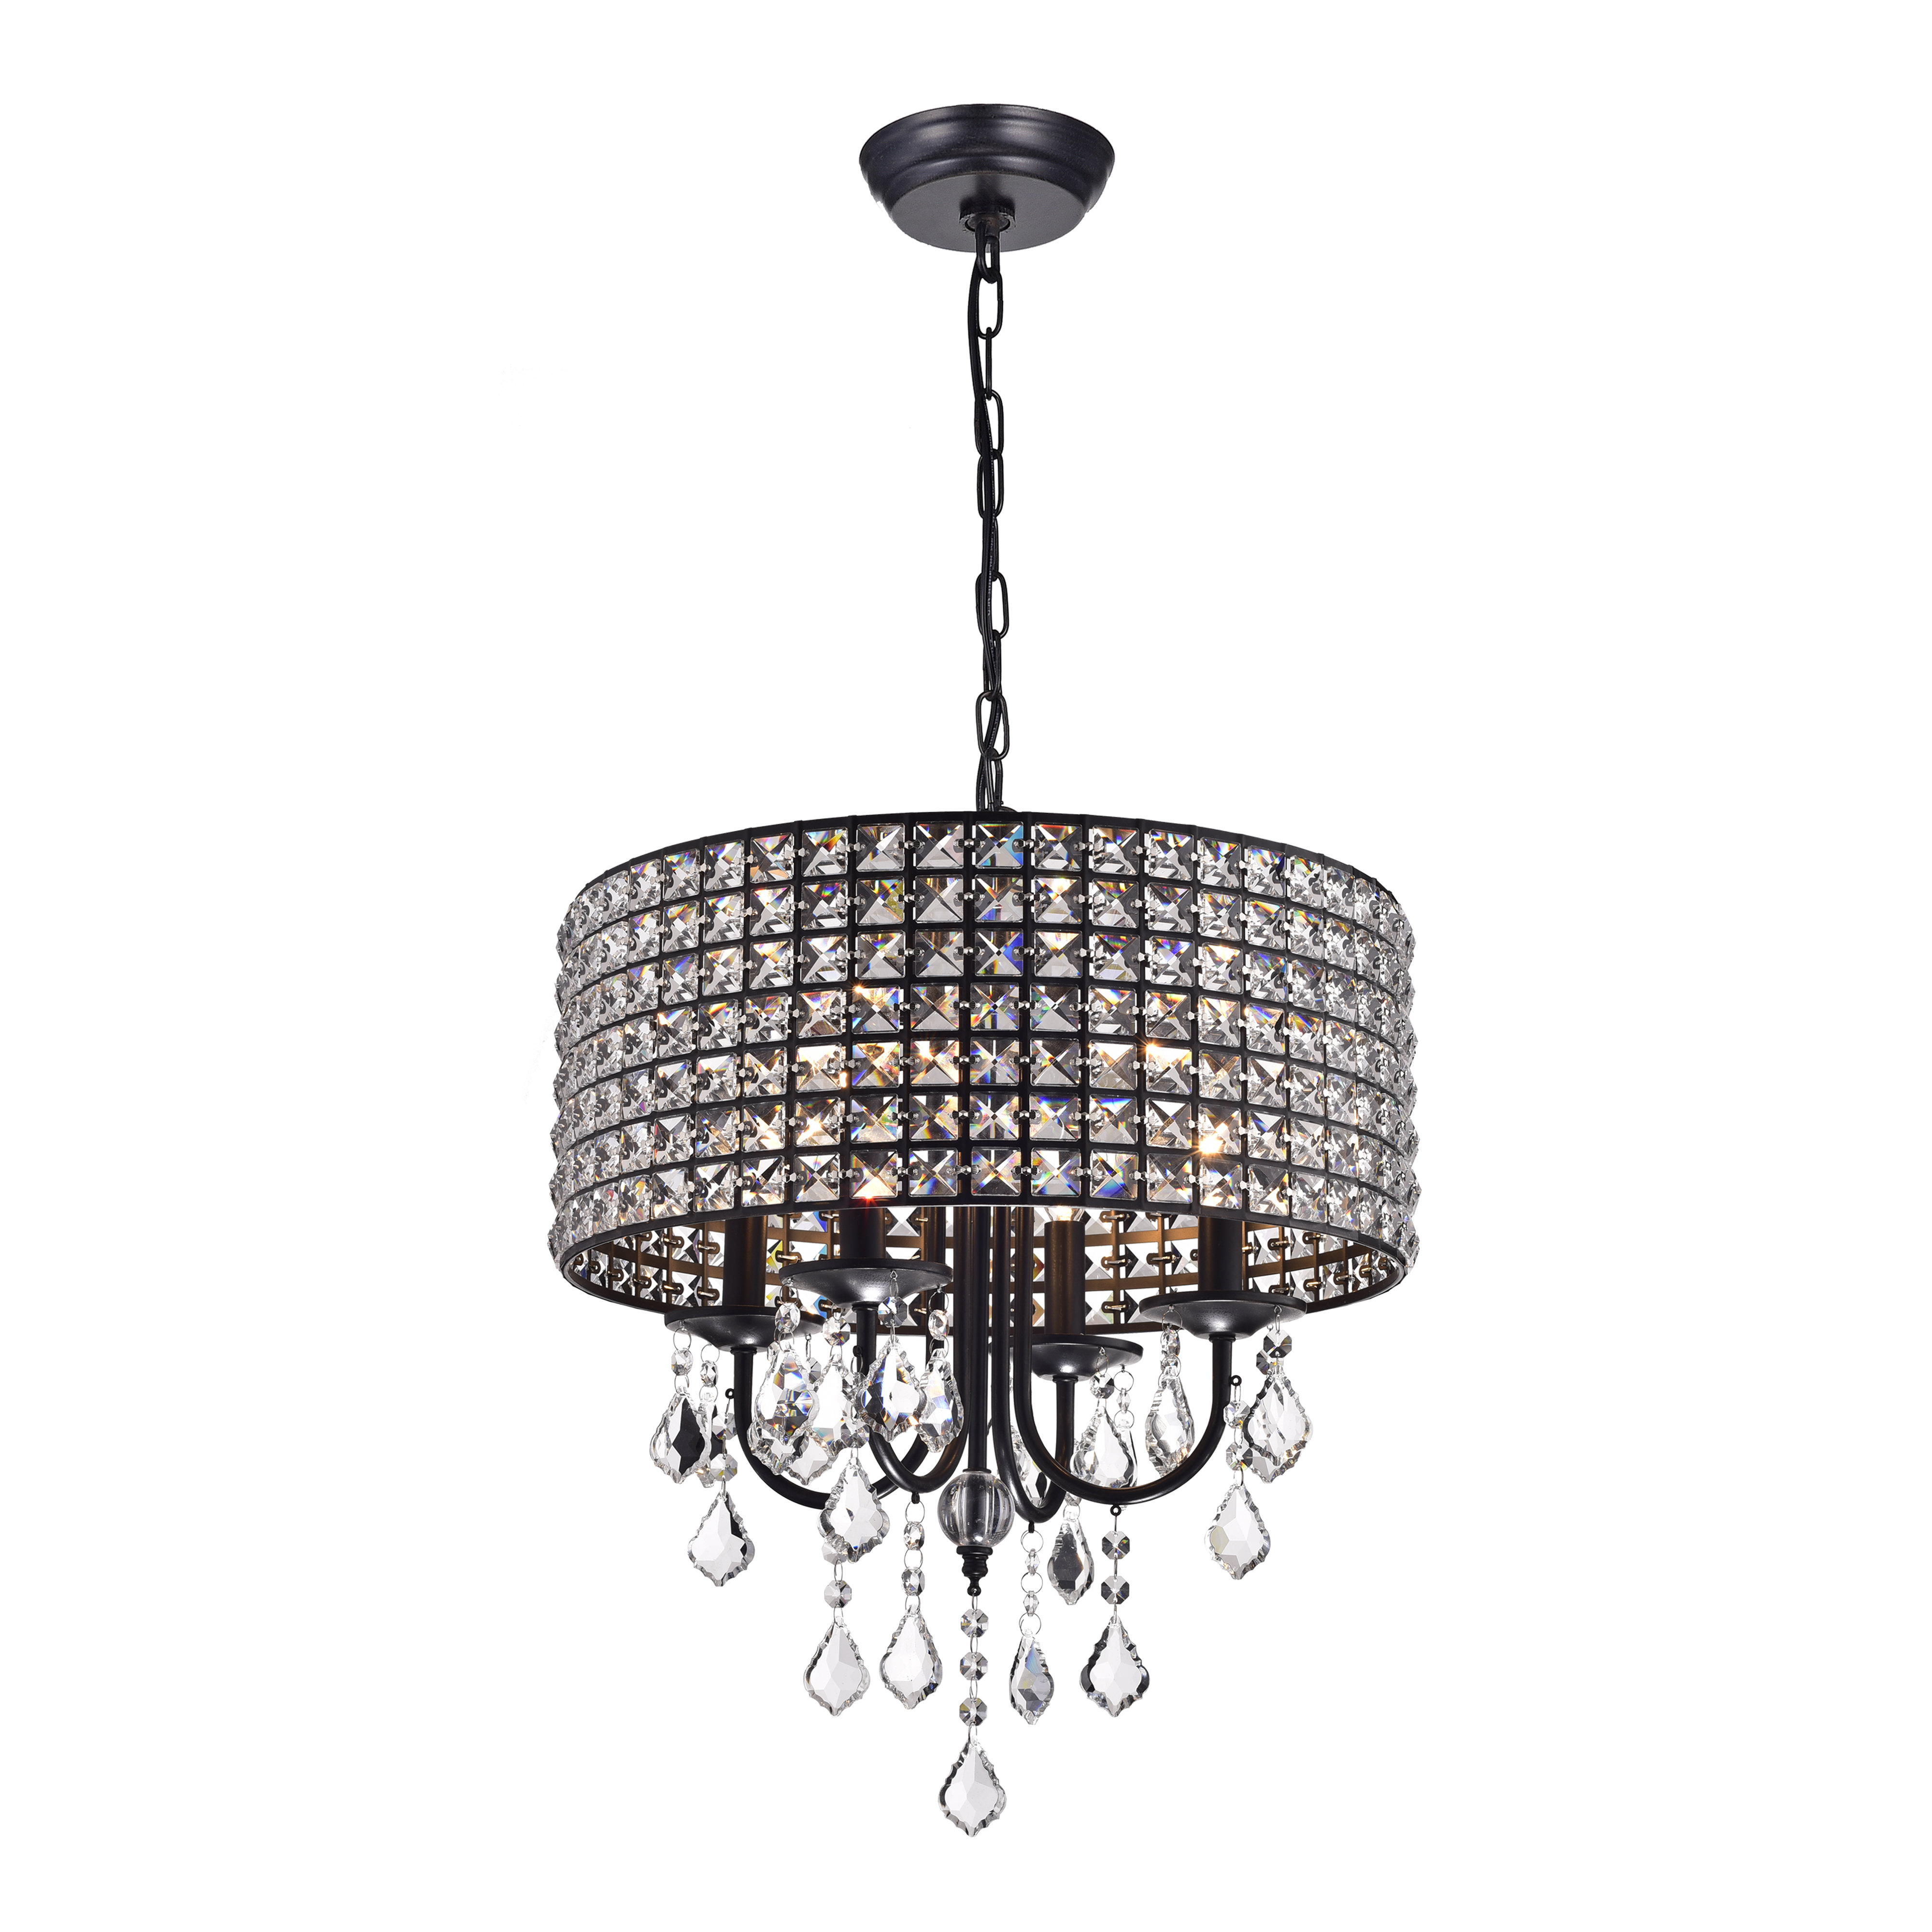 Famous Albano 4 Light Crystal Chandeliers Intended For Willa Arlo Interiors Albano 4 Light Crystal Chandelier (Gallery 6 of 20)